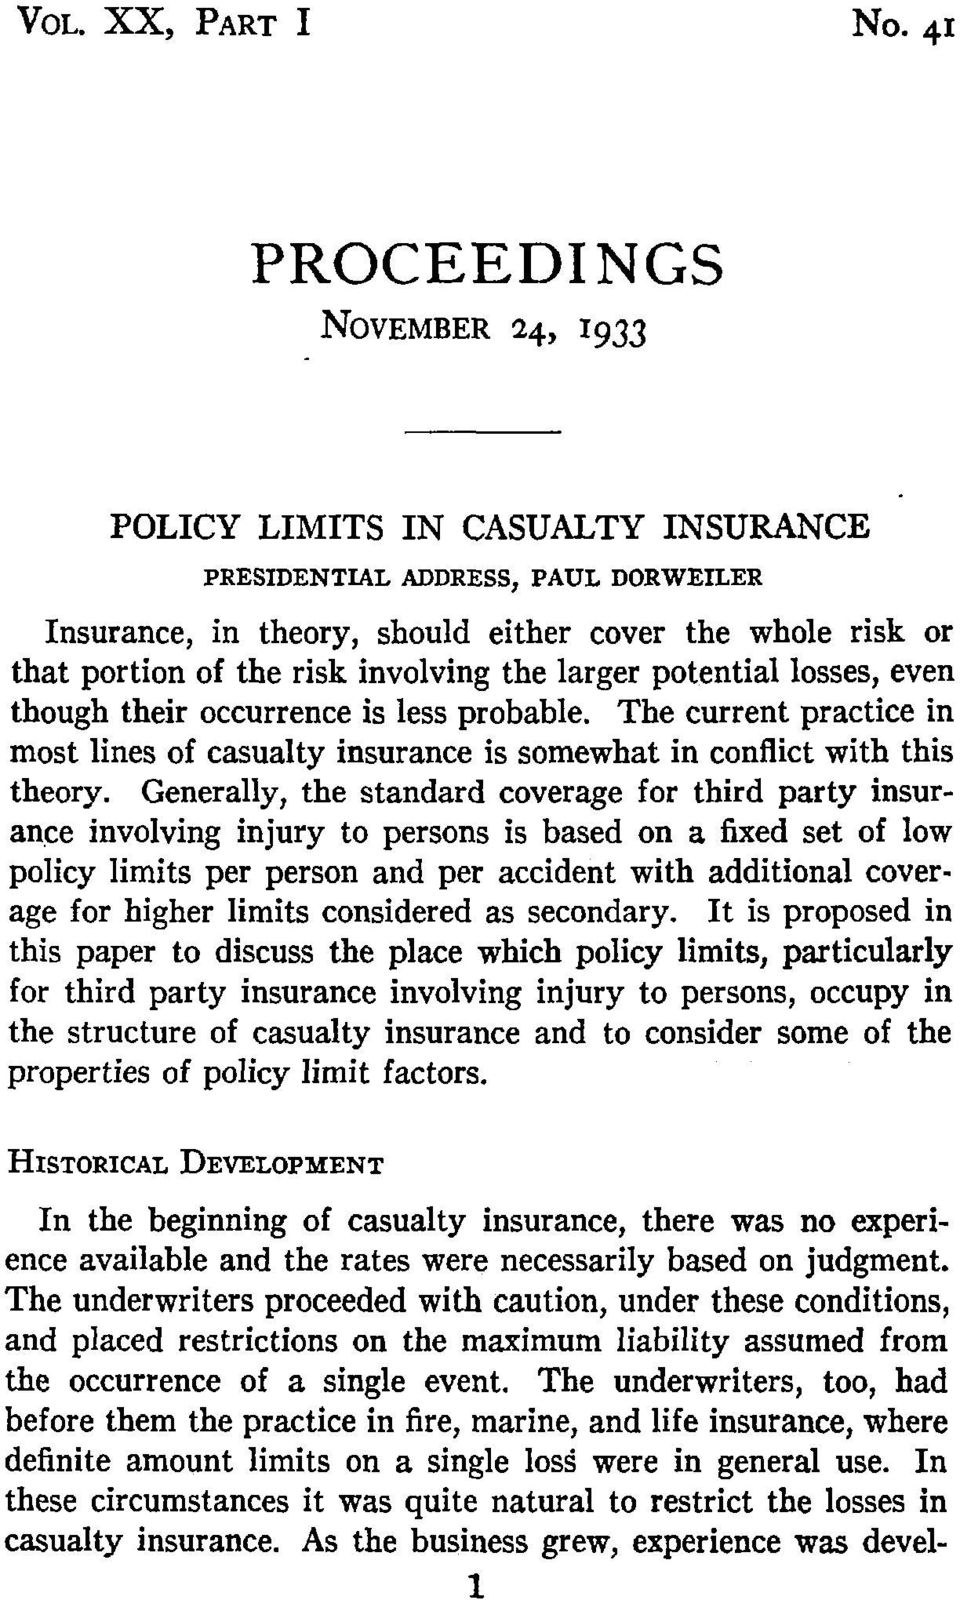 involving the larger potential losses, even though their occurrence is less probable. The current practice in most lines of casualty insurance is somewhat in conflict with this theory.